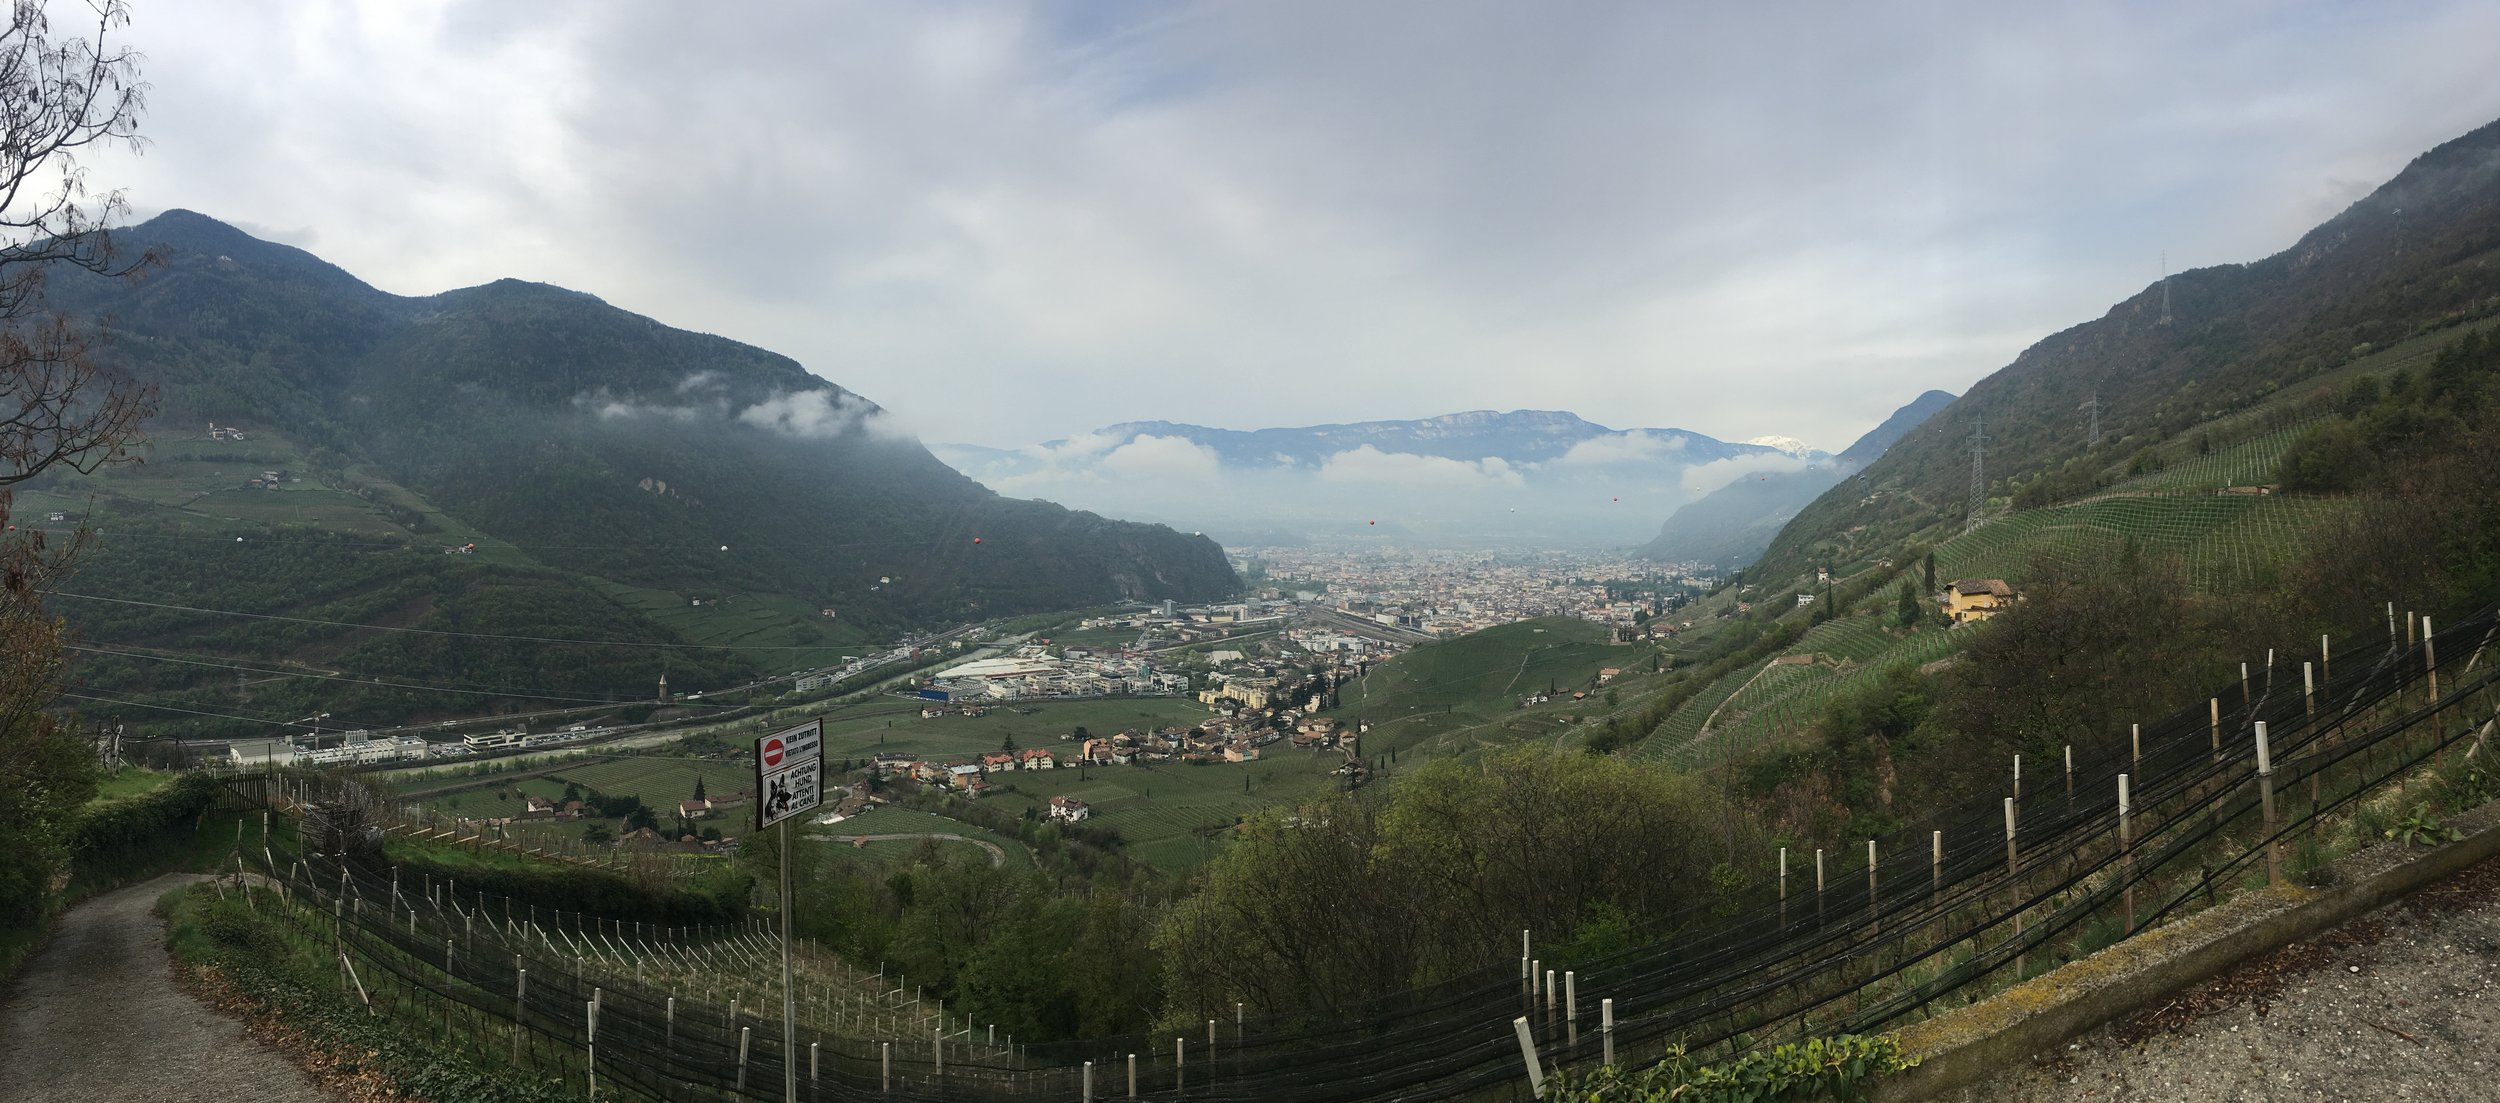 A view from a vineyard in St. Magdalener facing the village of Bolzano.